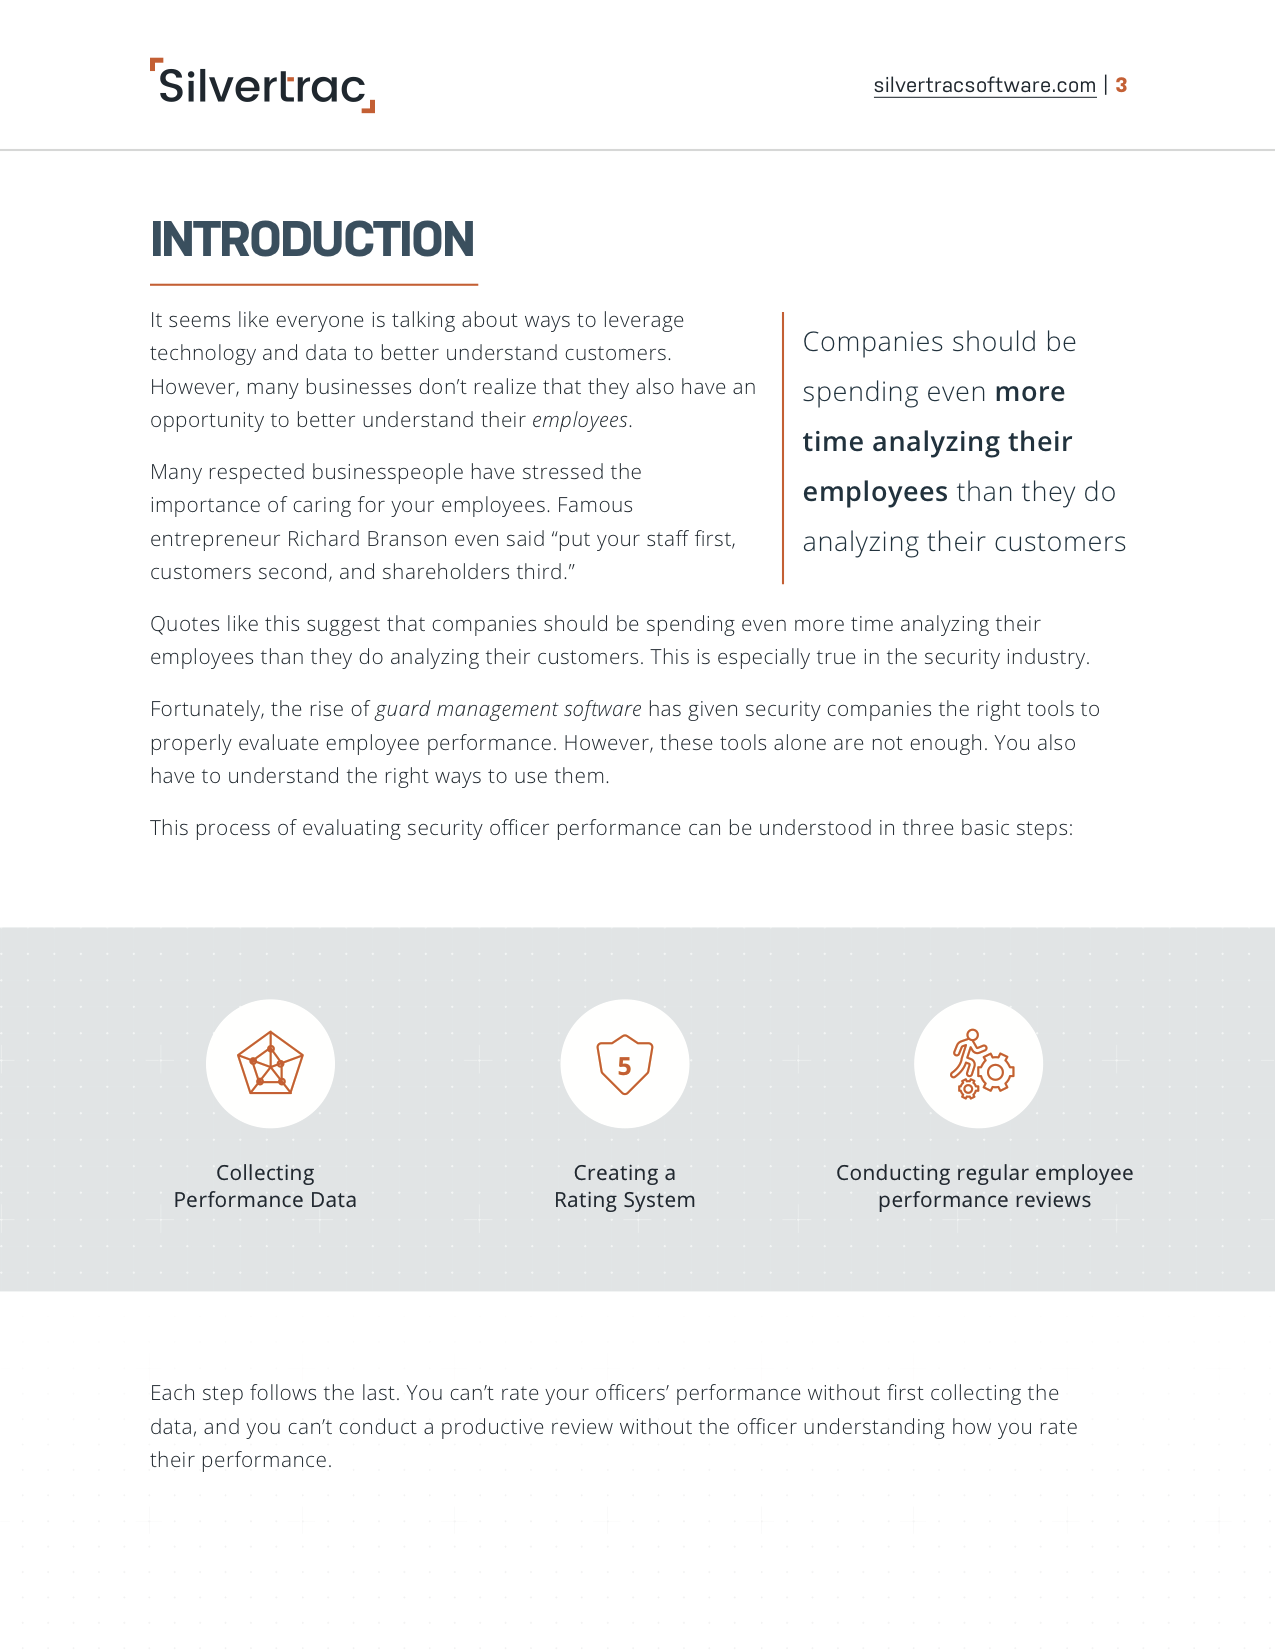 Evaluating Officer Performance Ebook Page 1